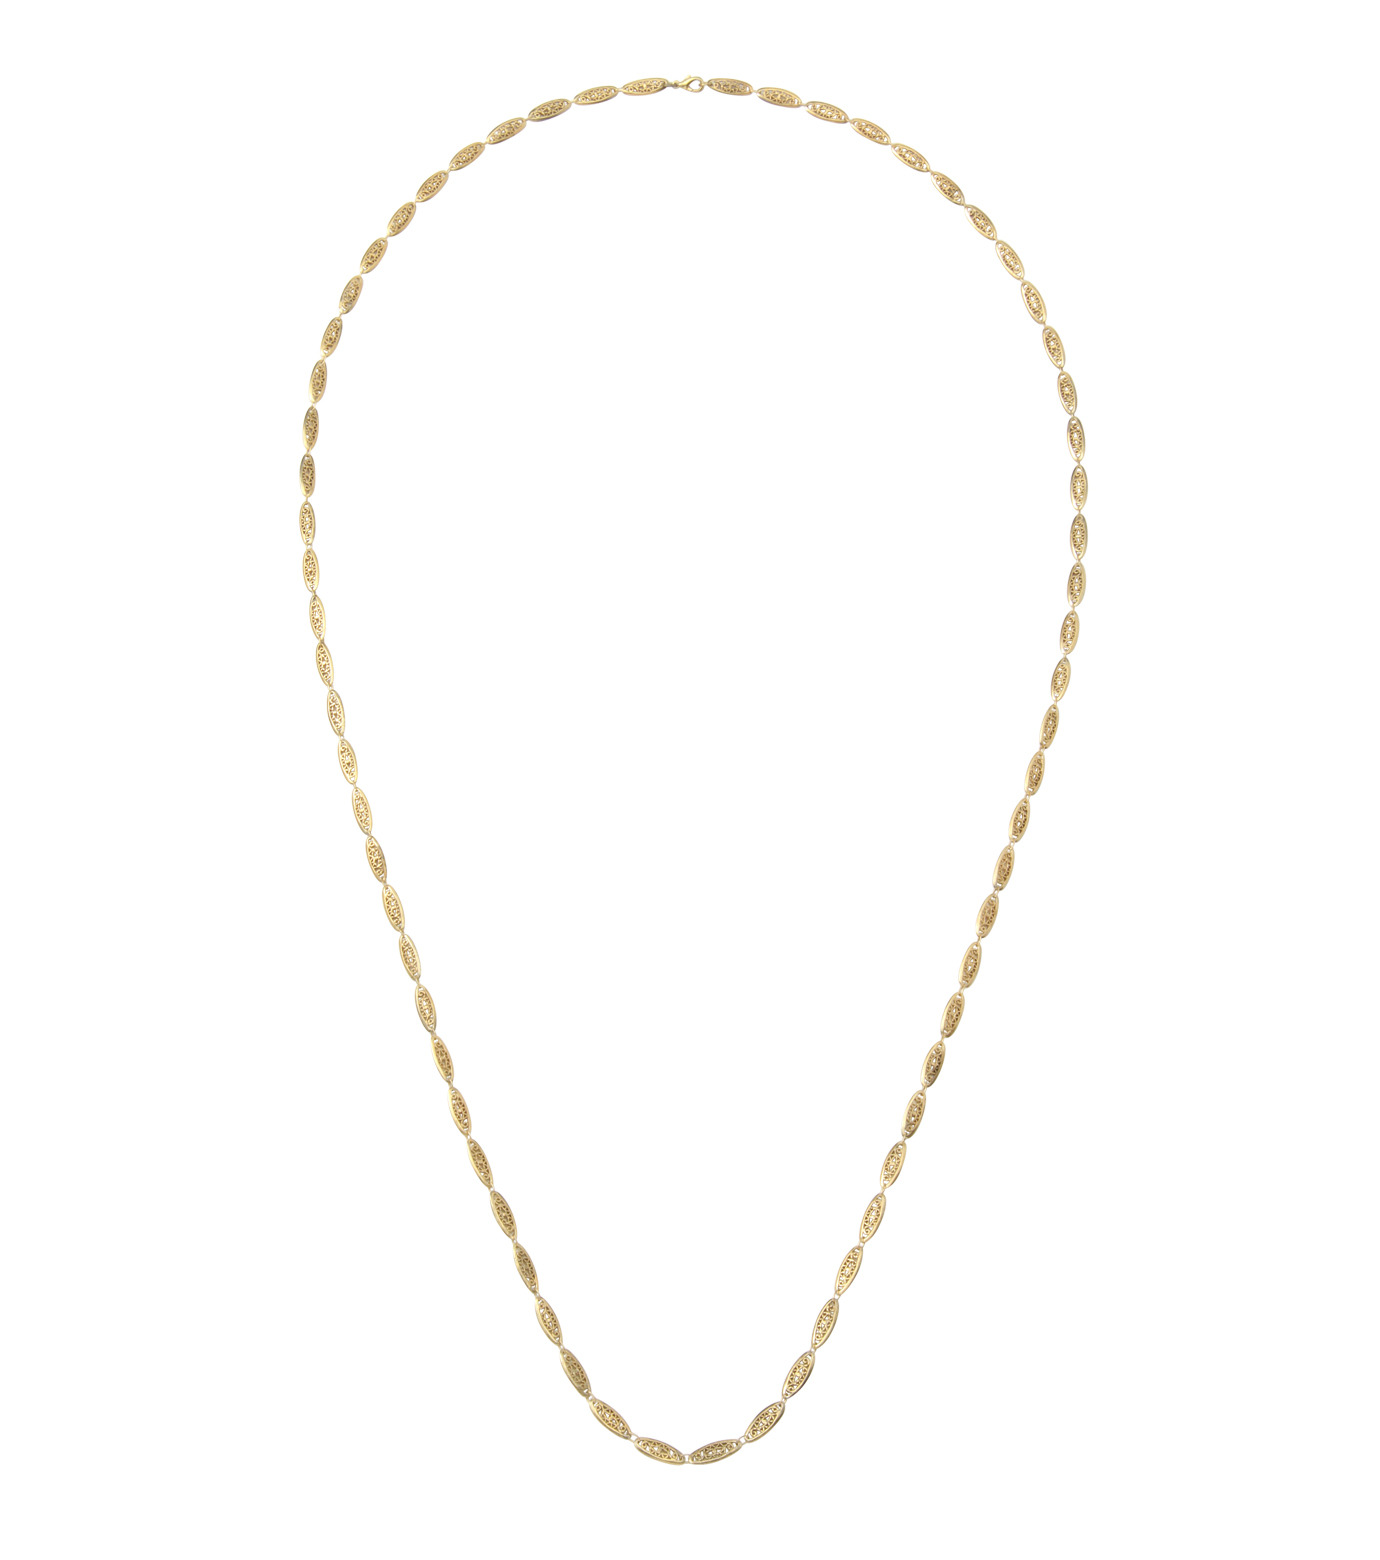 I AM by Ileana Makri(アイ アム バイ イリーナ マクリ)のChantilly Single Necklace Ellipse-GOLD(ネックレス/necklace)-O842-61-099-2 拡大詳細画像1